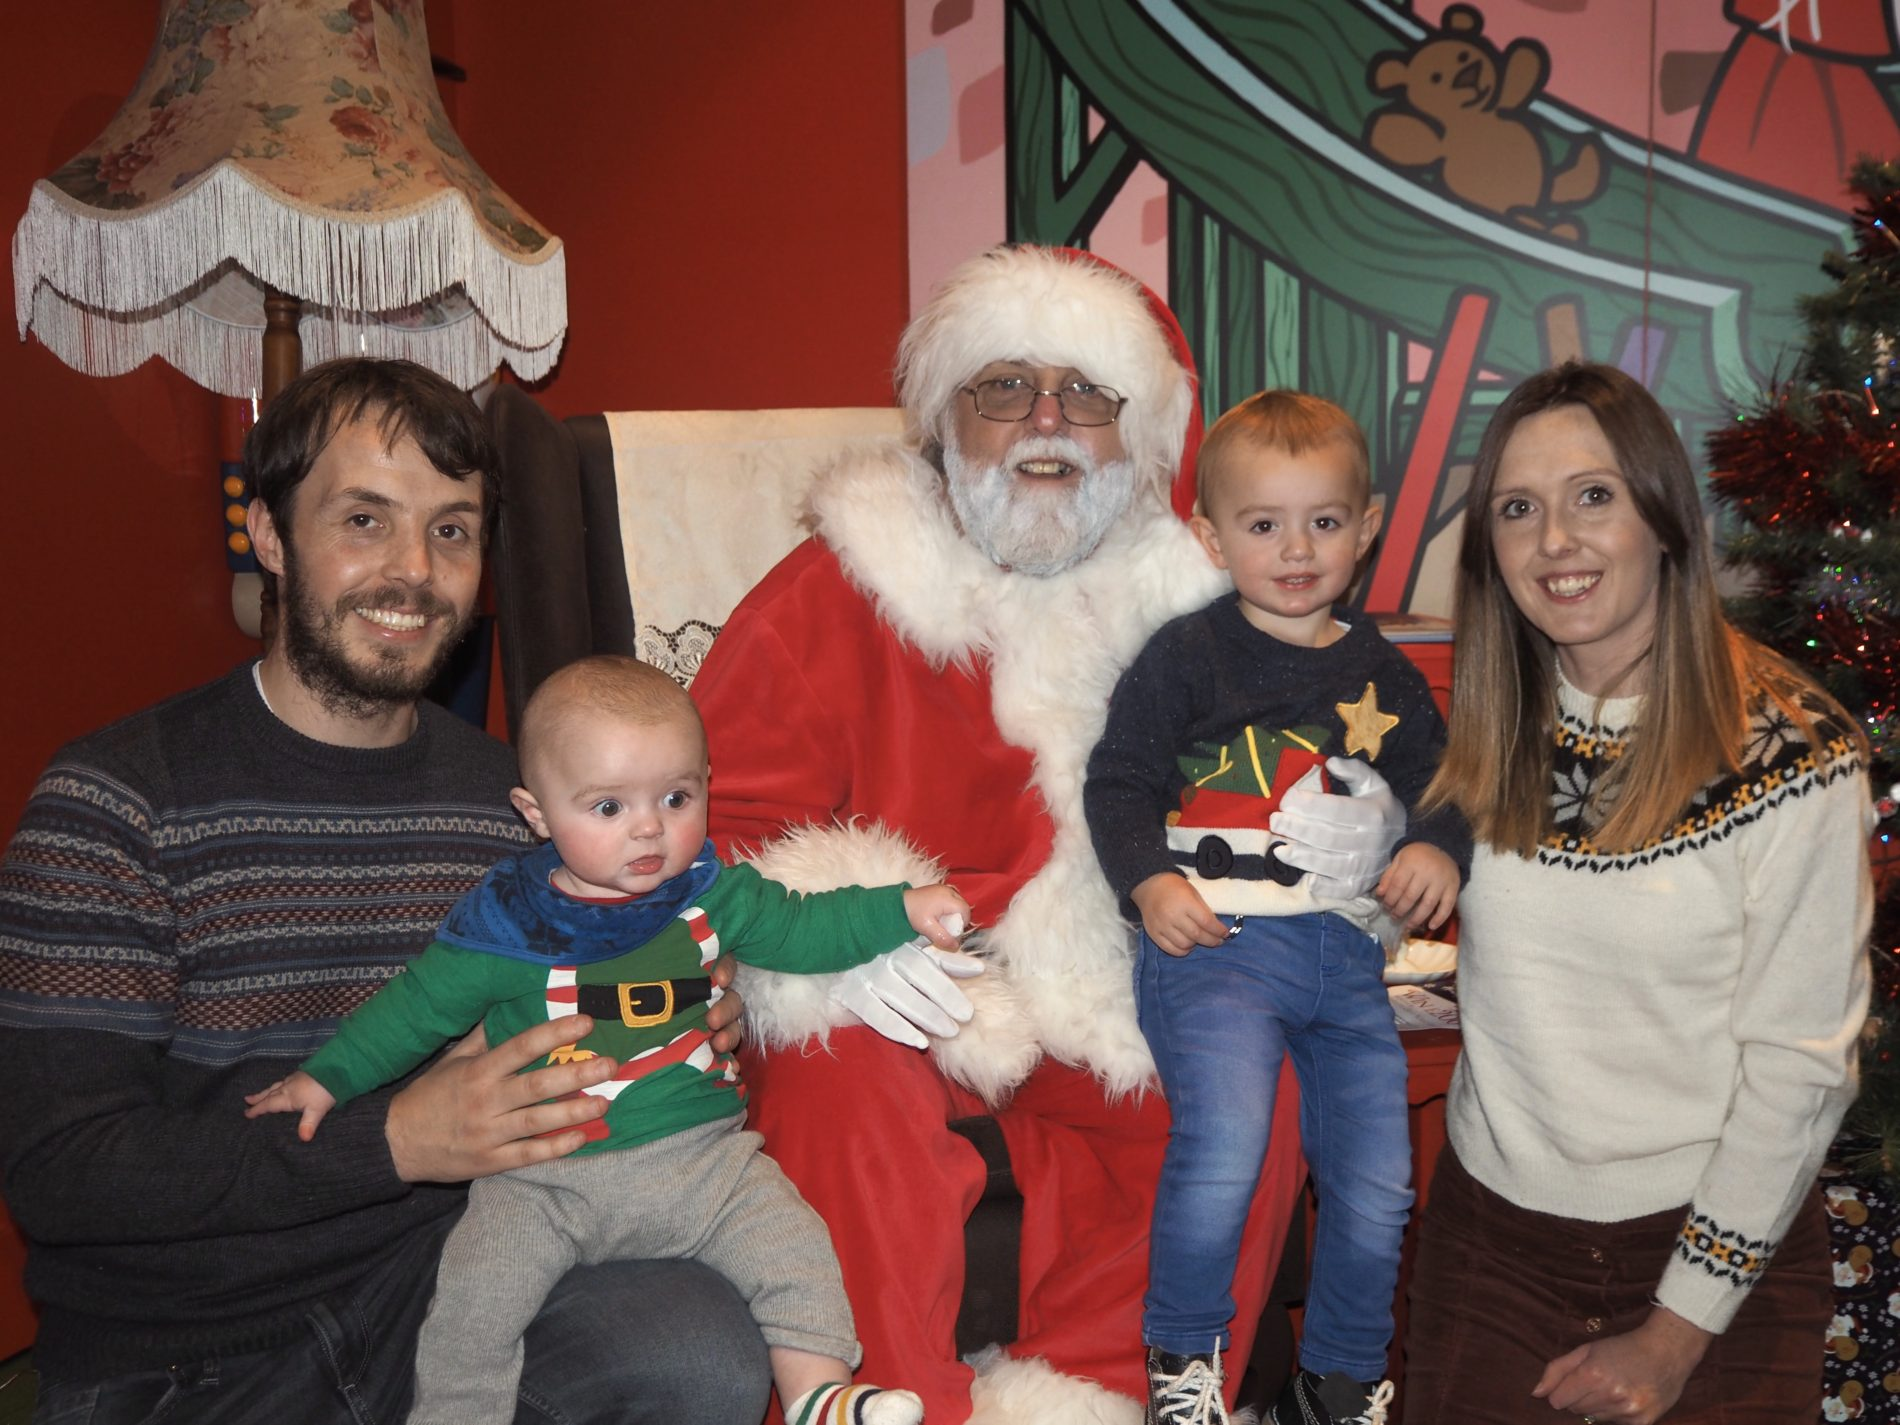 Meeting Father Christmas at Hamleys Cardiff